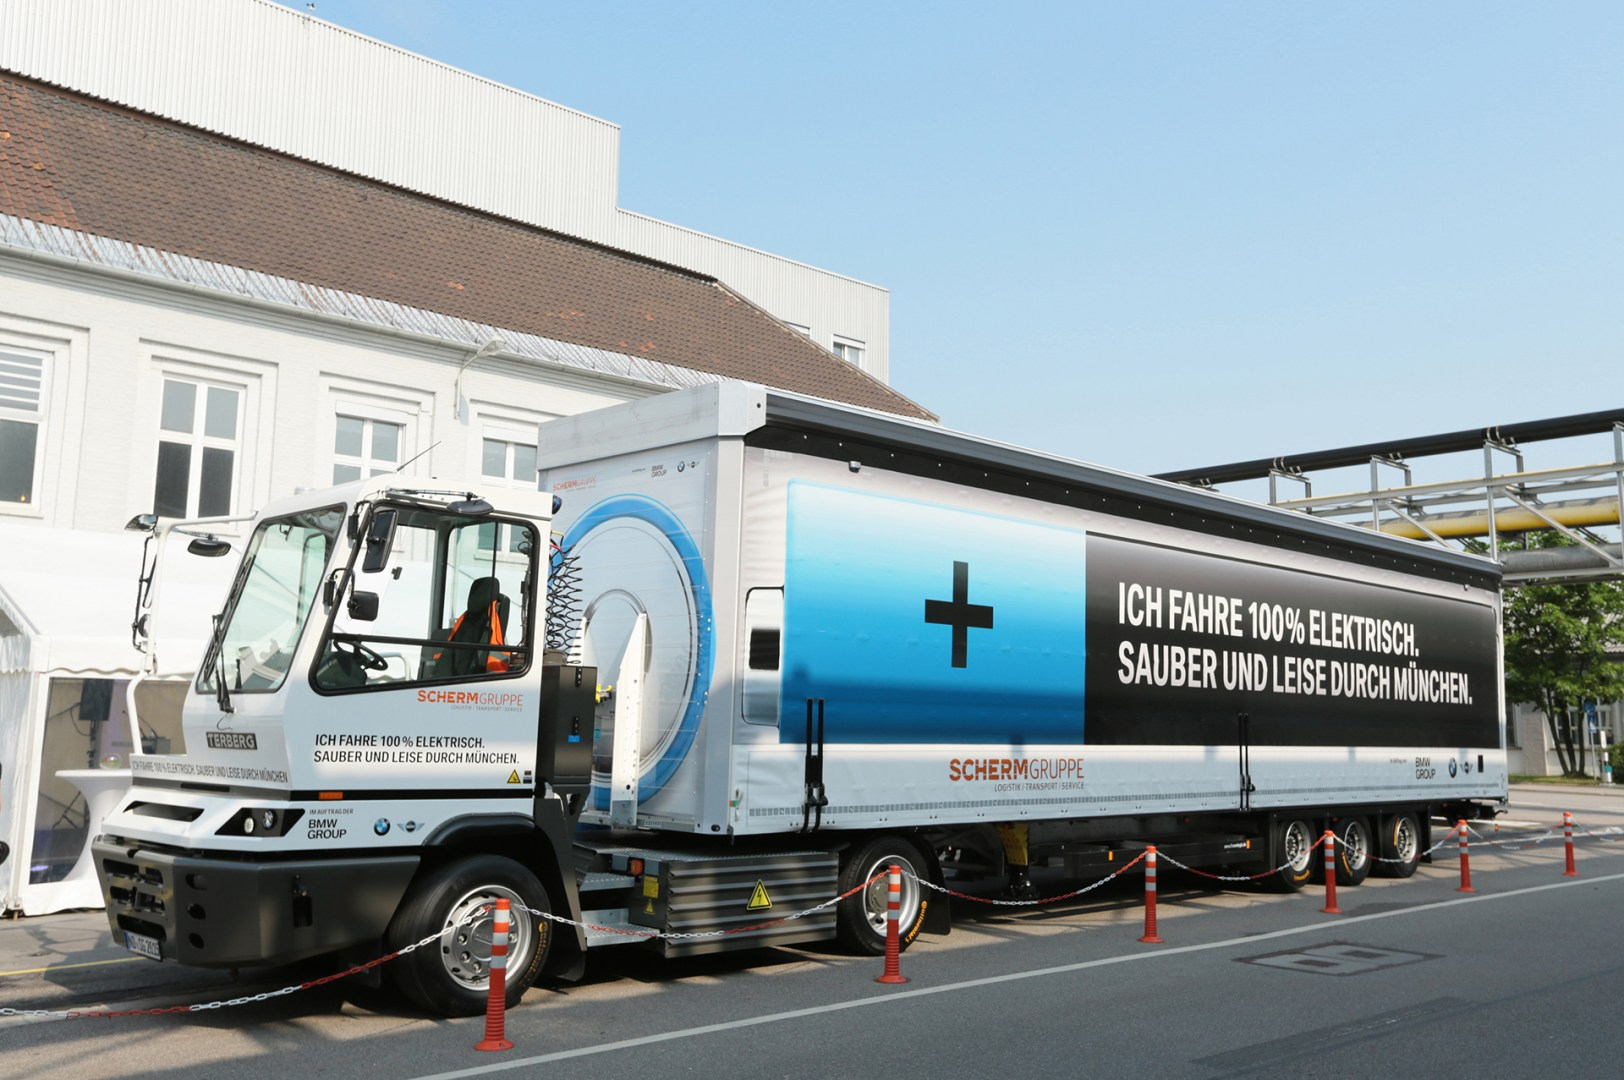 BMW & SCHERM Group developed an Electric Truck i.e. Semi